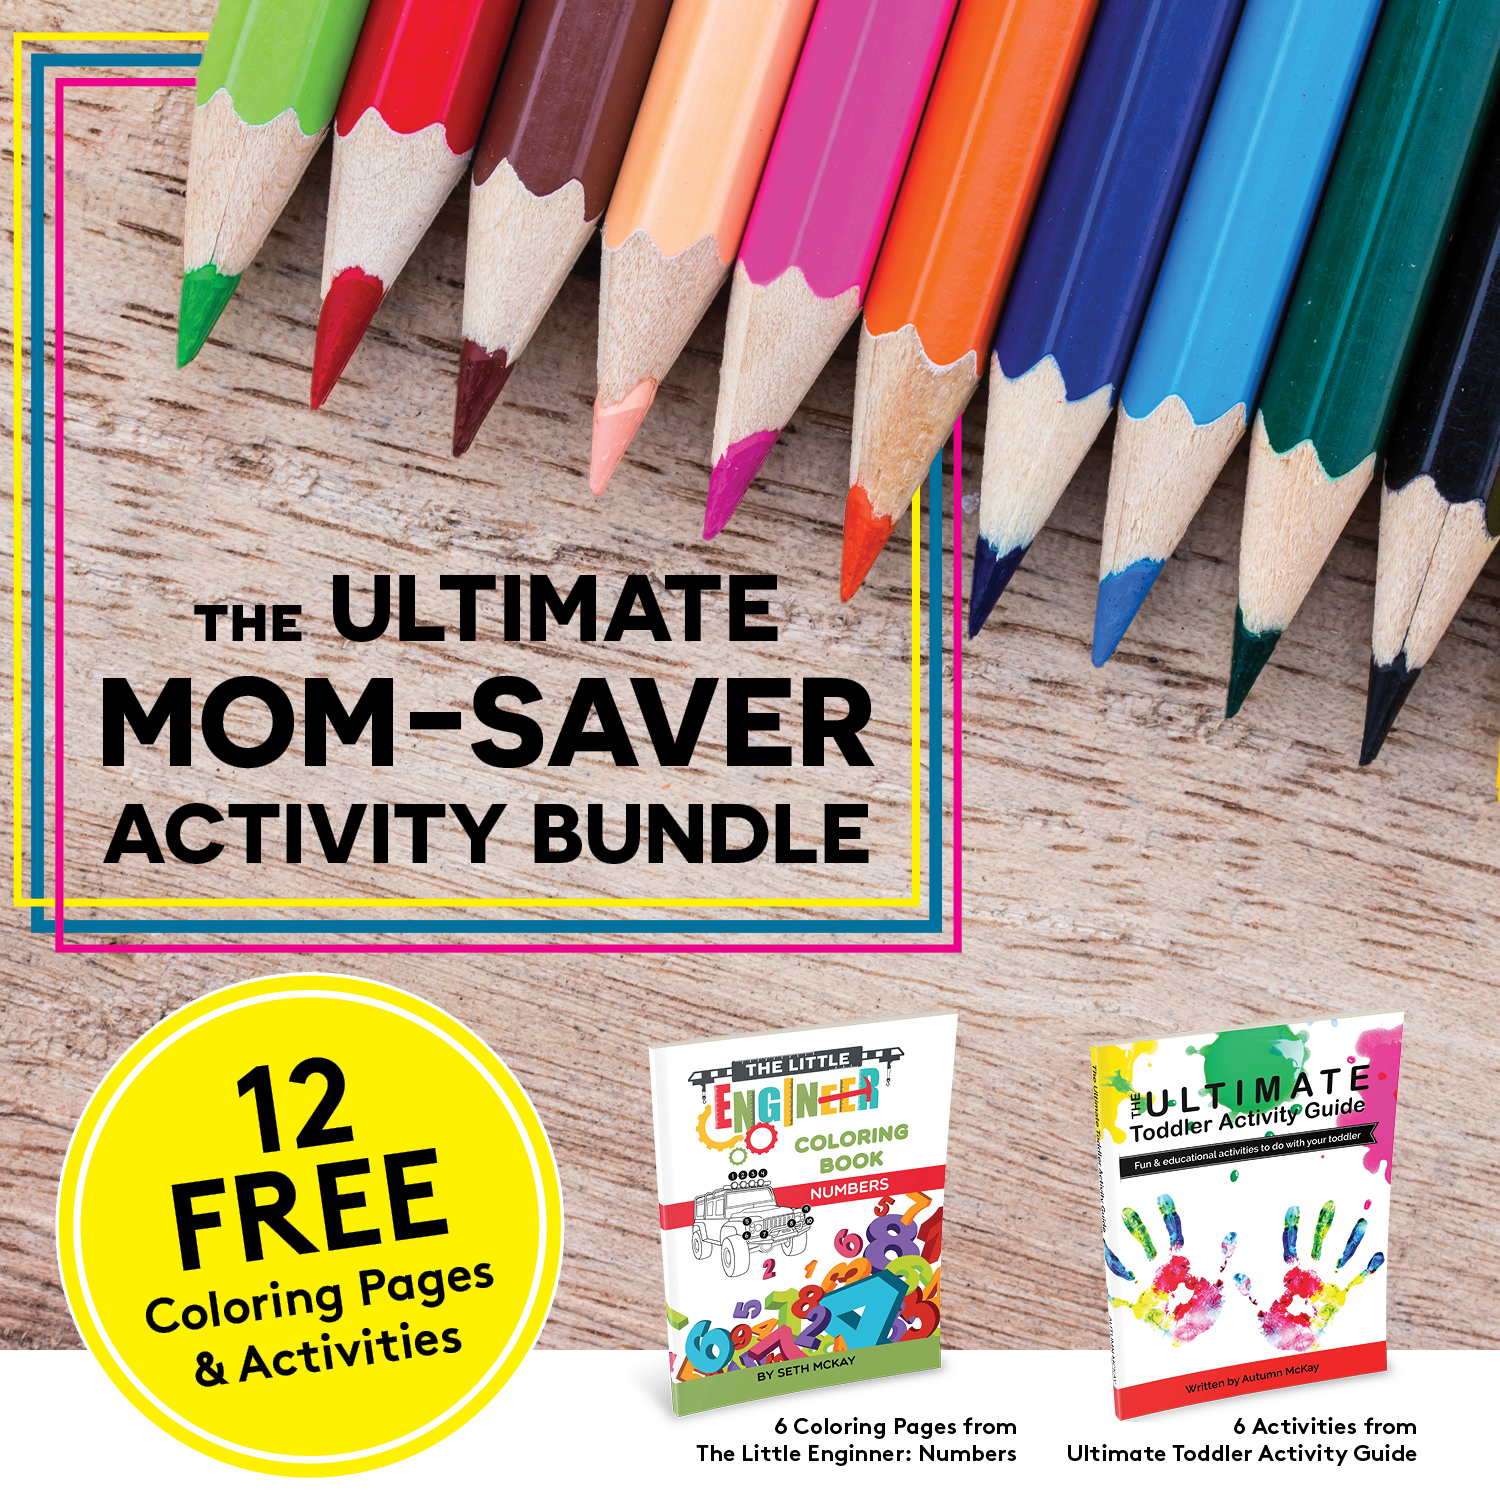 FREE Ultimate Mom-Saver Activity Bundle - Get my FREE Ultimate Mom-Saver Activity Bundle for Preschoolers, which includes 6 hands-on activities and 6 special coloring pages that I know your child will love!Hours of fun are waiting for you and your preschooler! Save your sanity and get your free activity bundle today.